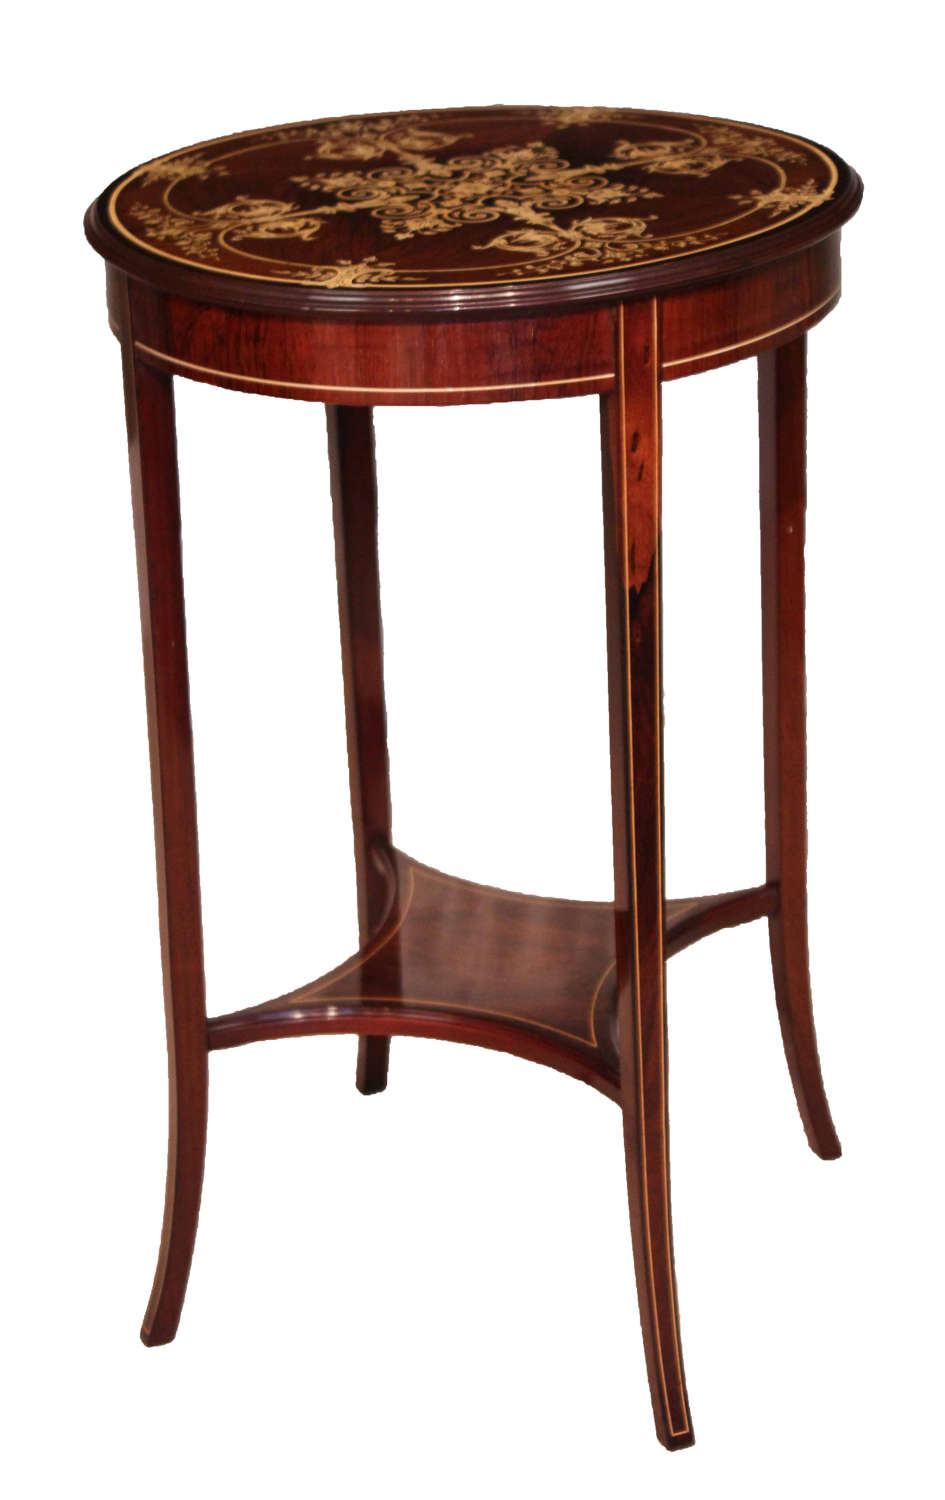 An Edwardian Quality Late Victorian Rosewood Inlaid Table